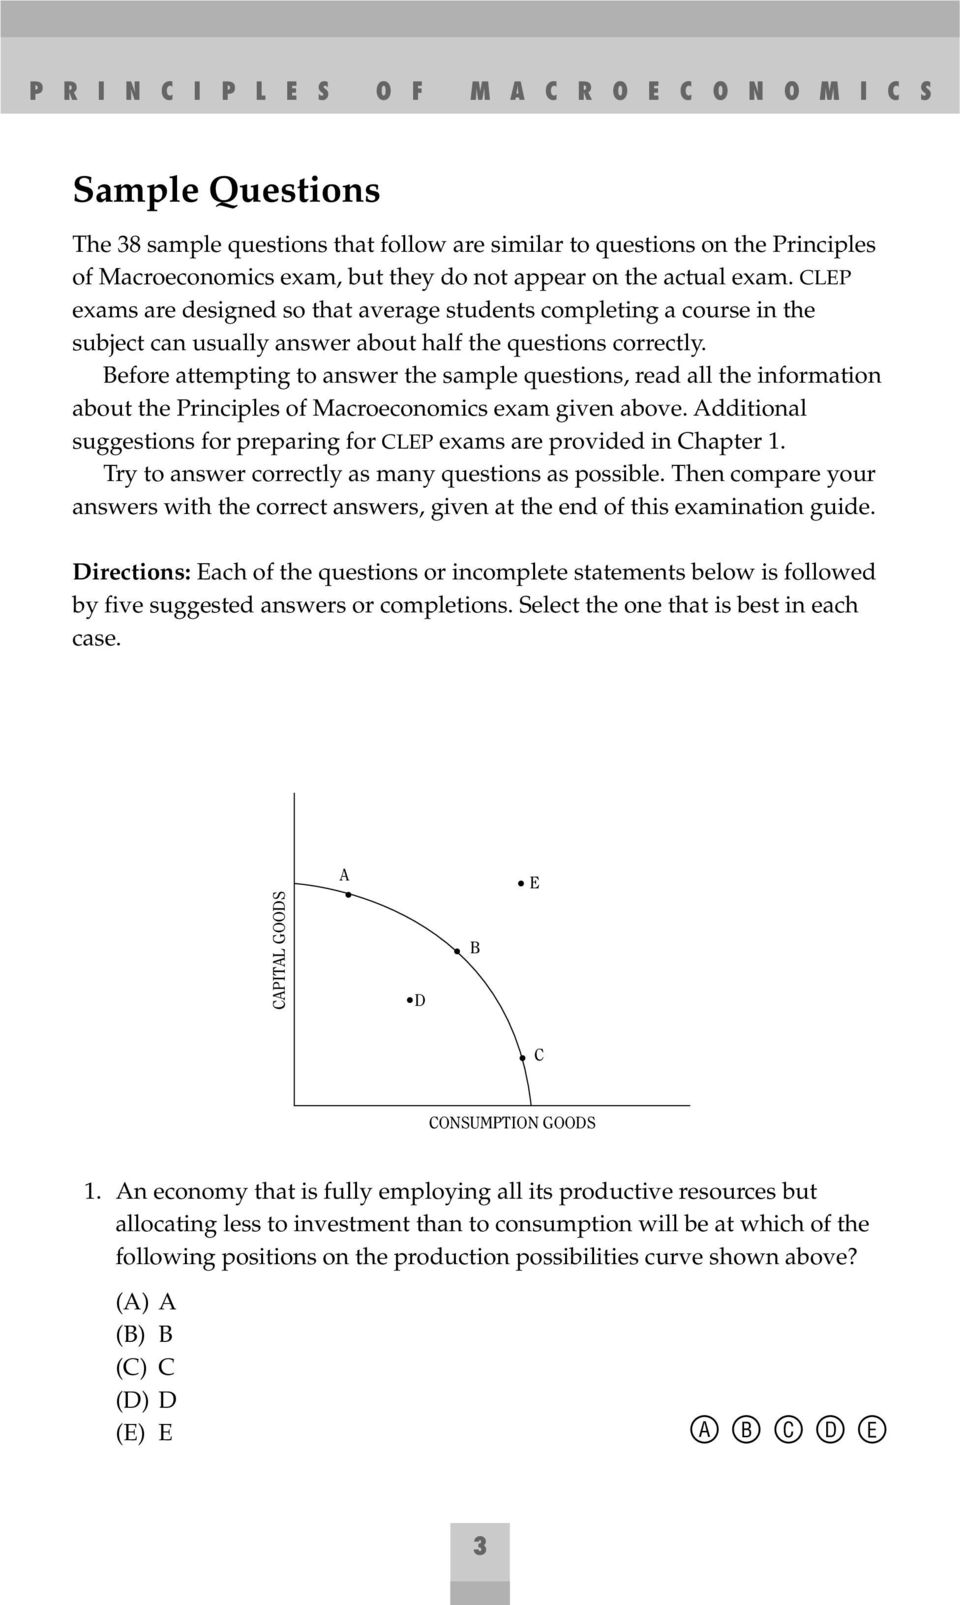 Before attempting to answer the sample questions, read all the information about the Principles of Macroeconomics exam given above.